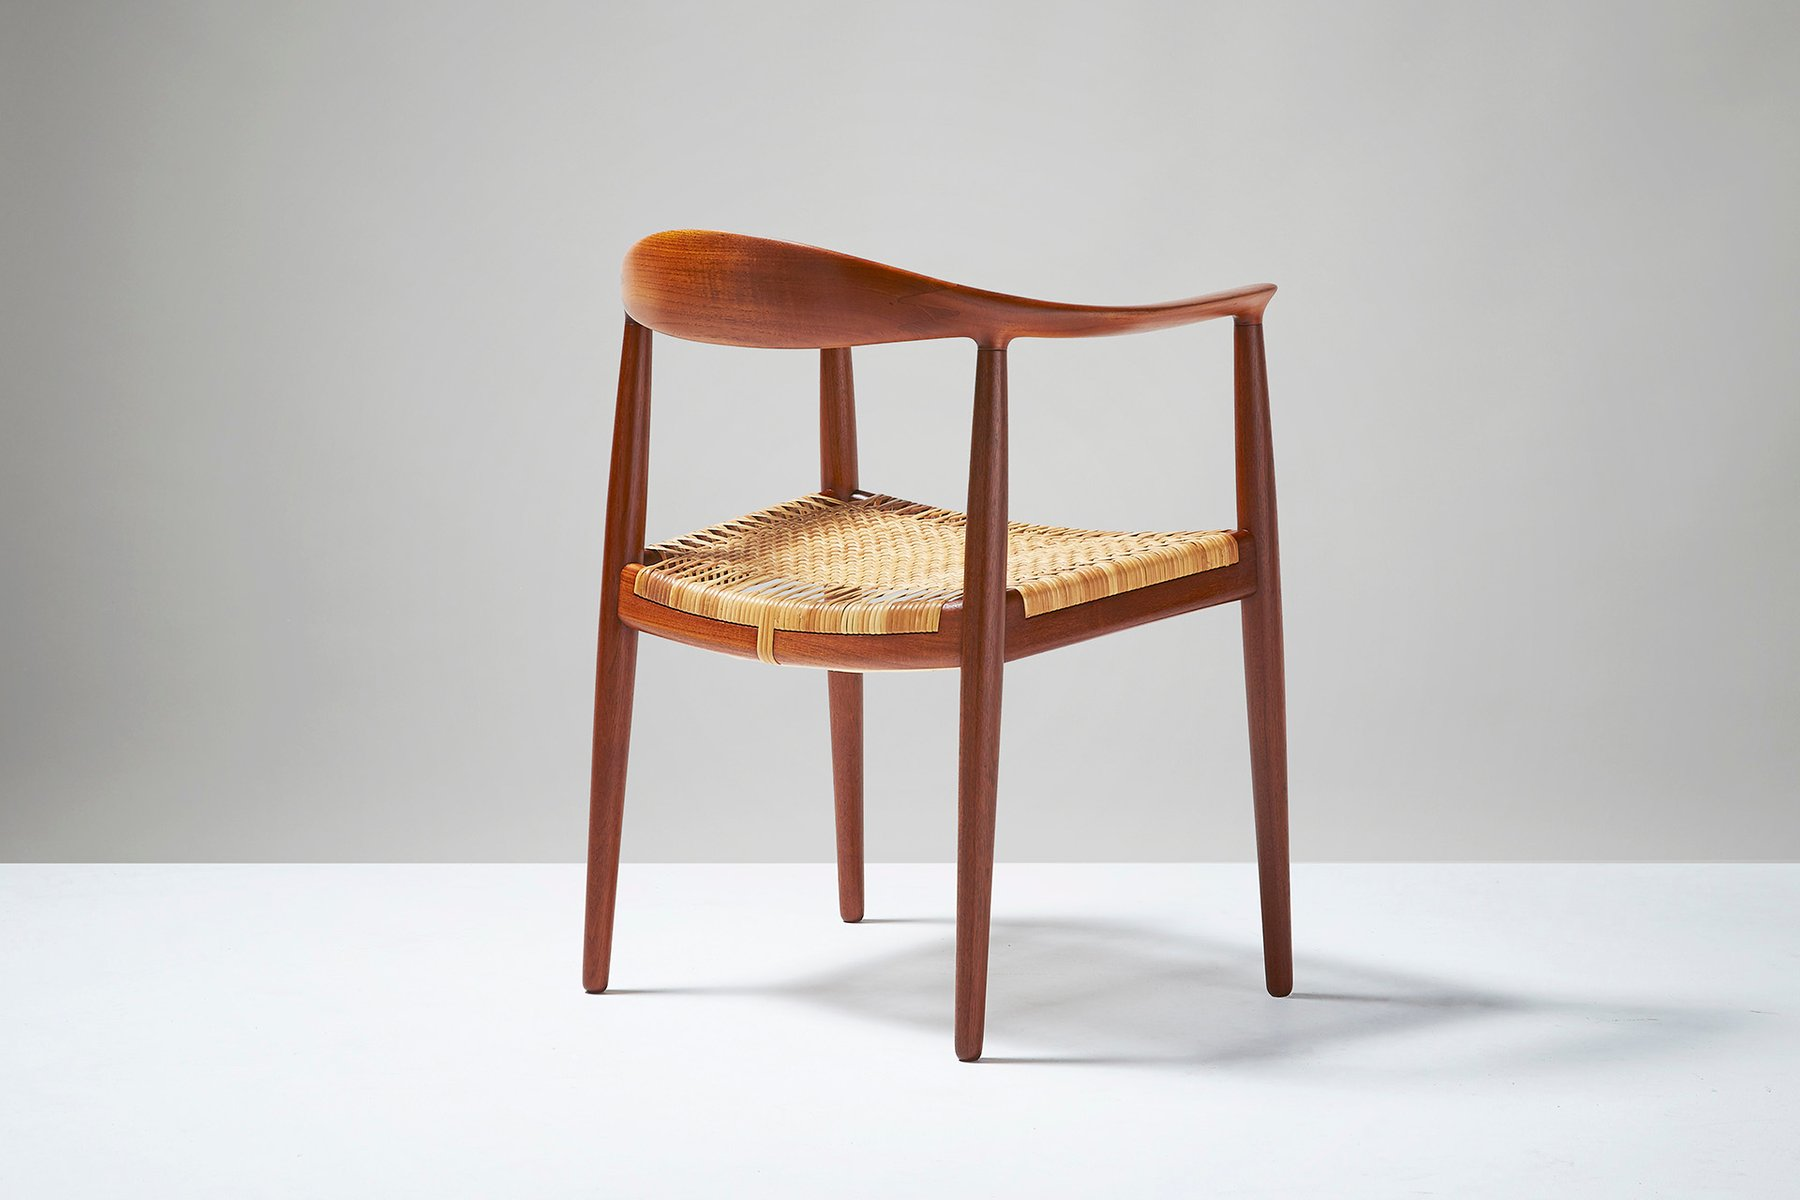 Vintage JH 501 The Chair by Hans J Wegner for Johannes Hansen for